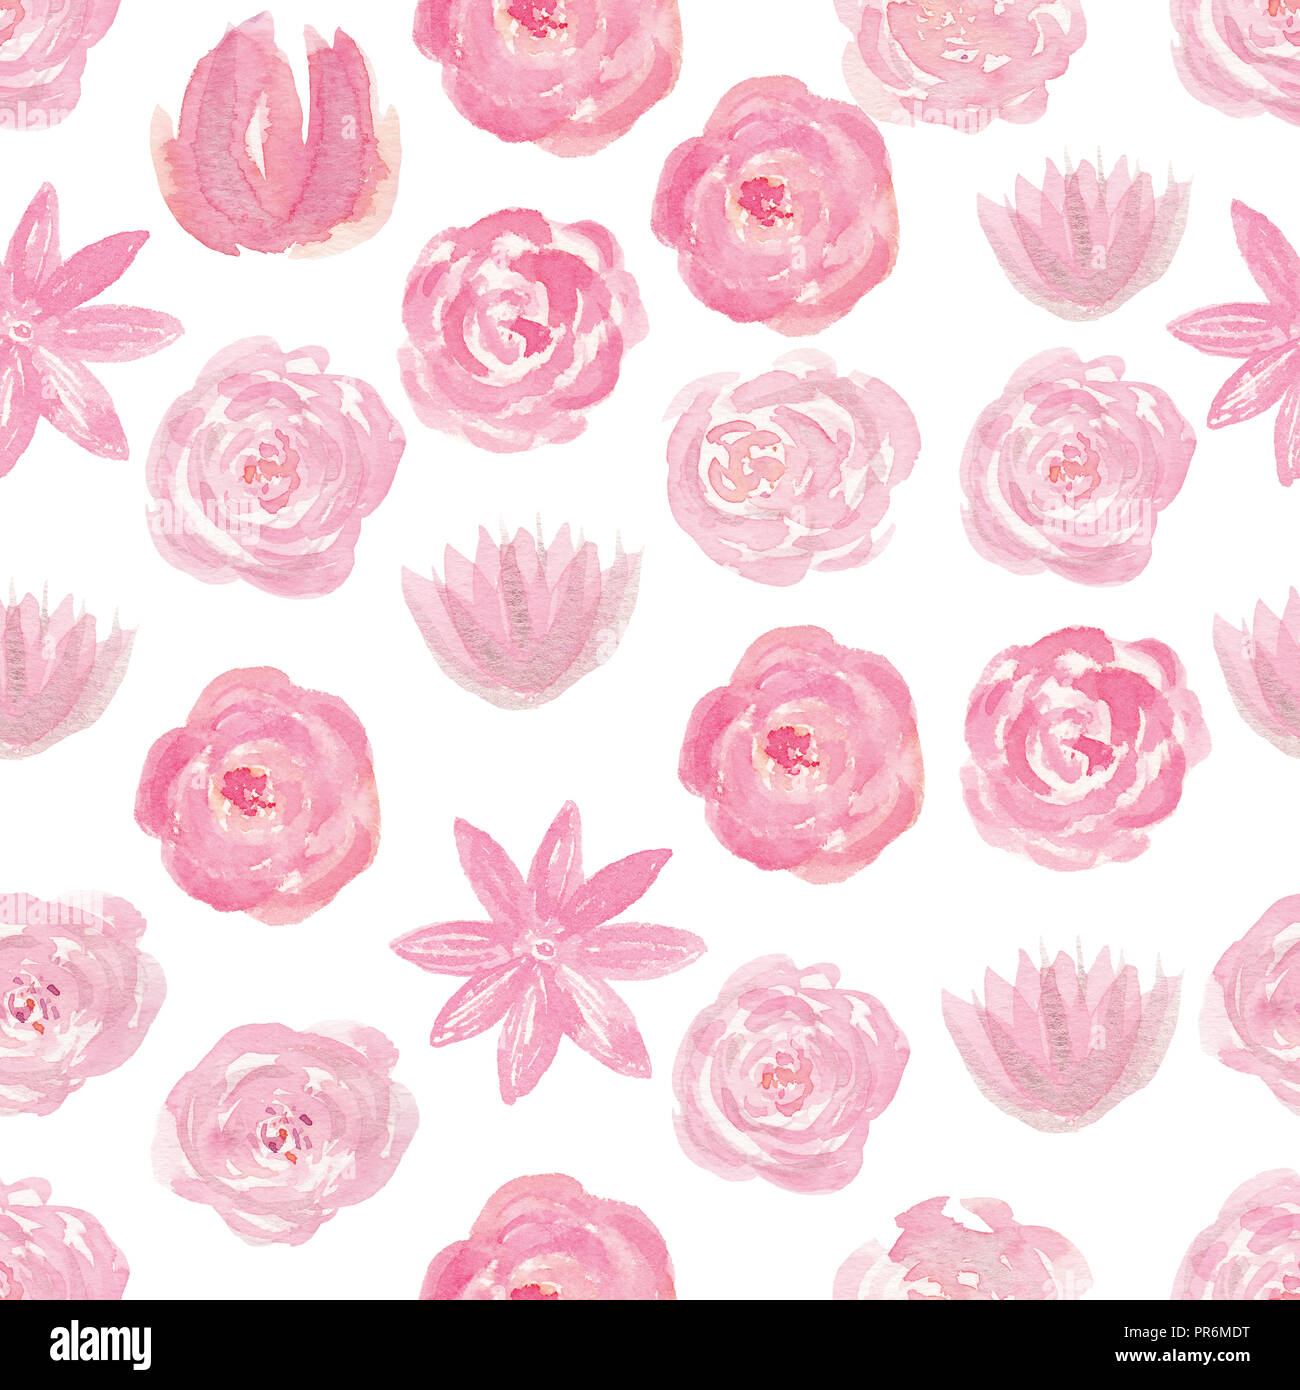 Watercolor Pink Seamless Pattern With Flowers Romantic Floral